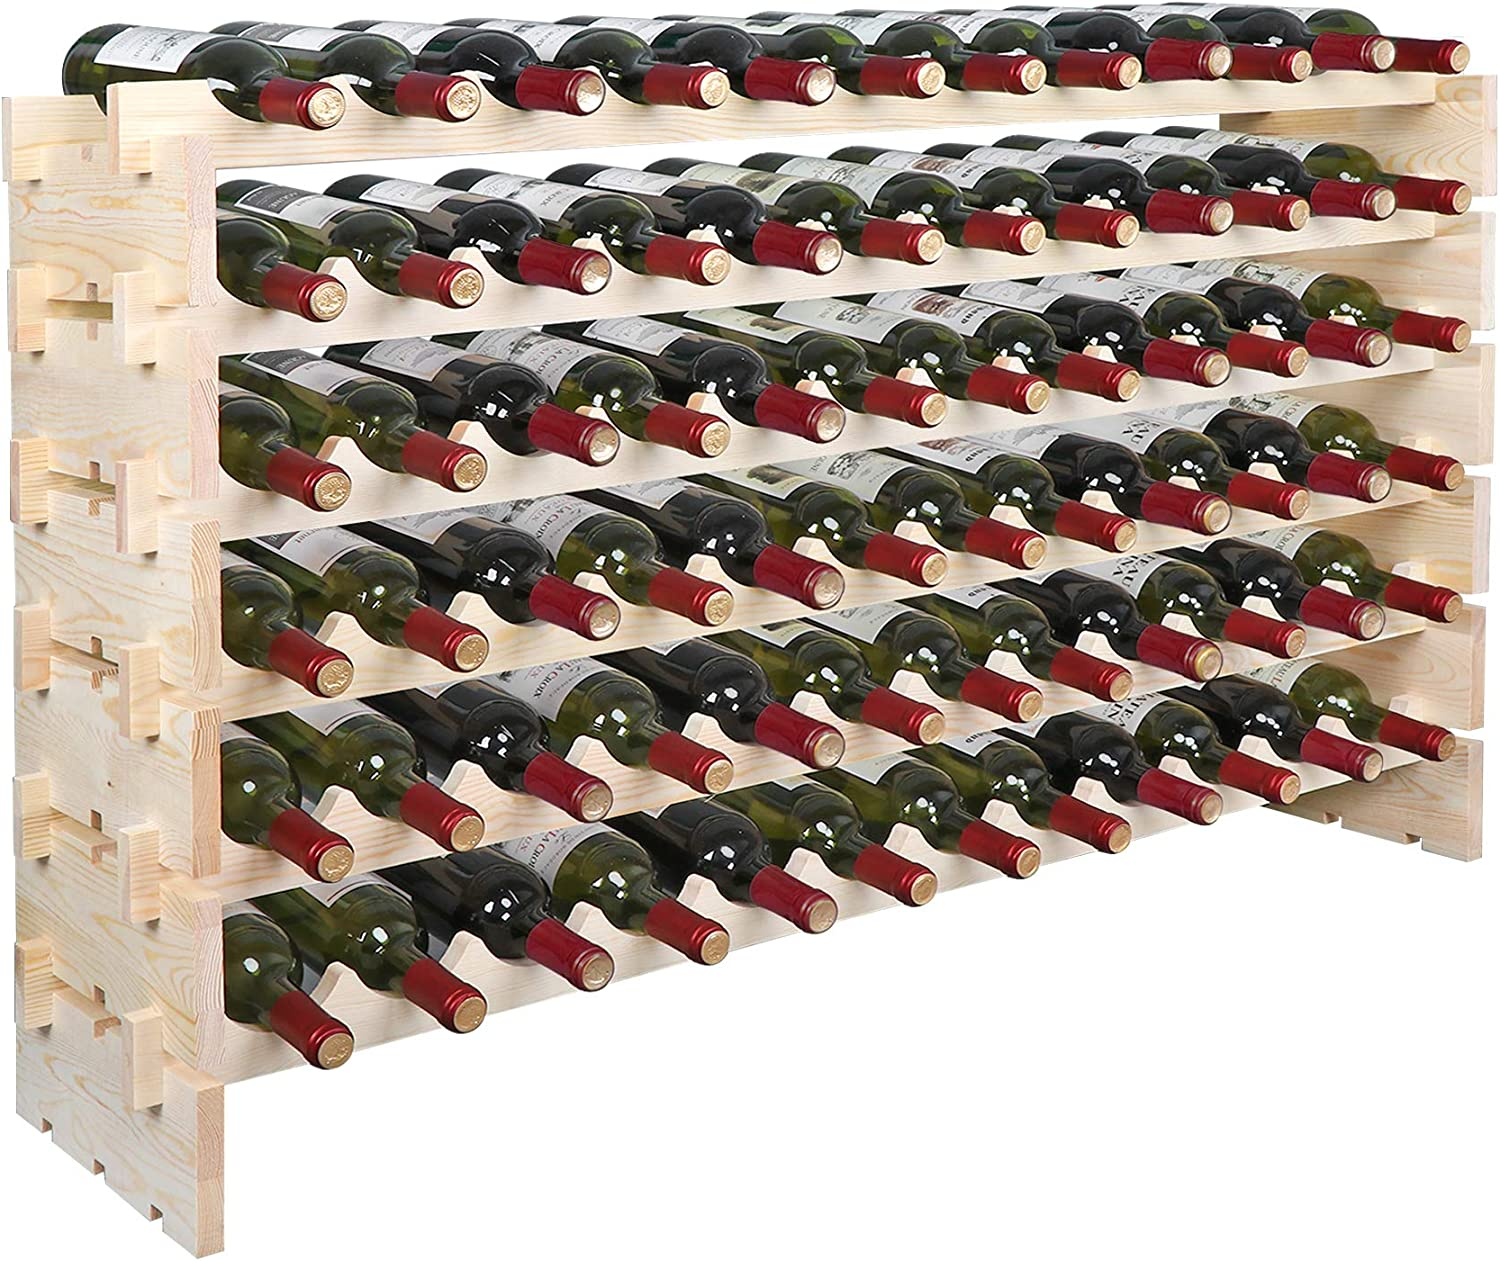 Stackable Modular Wine Rack Wine Storage